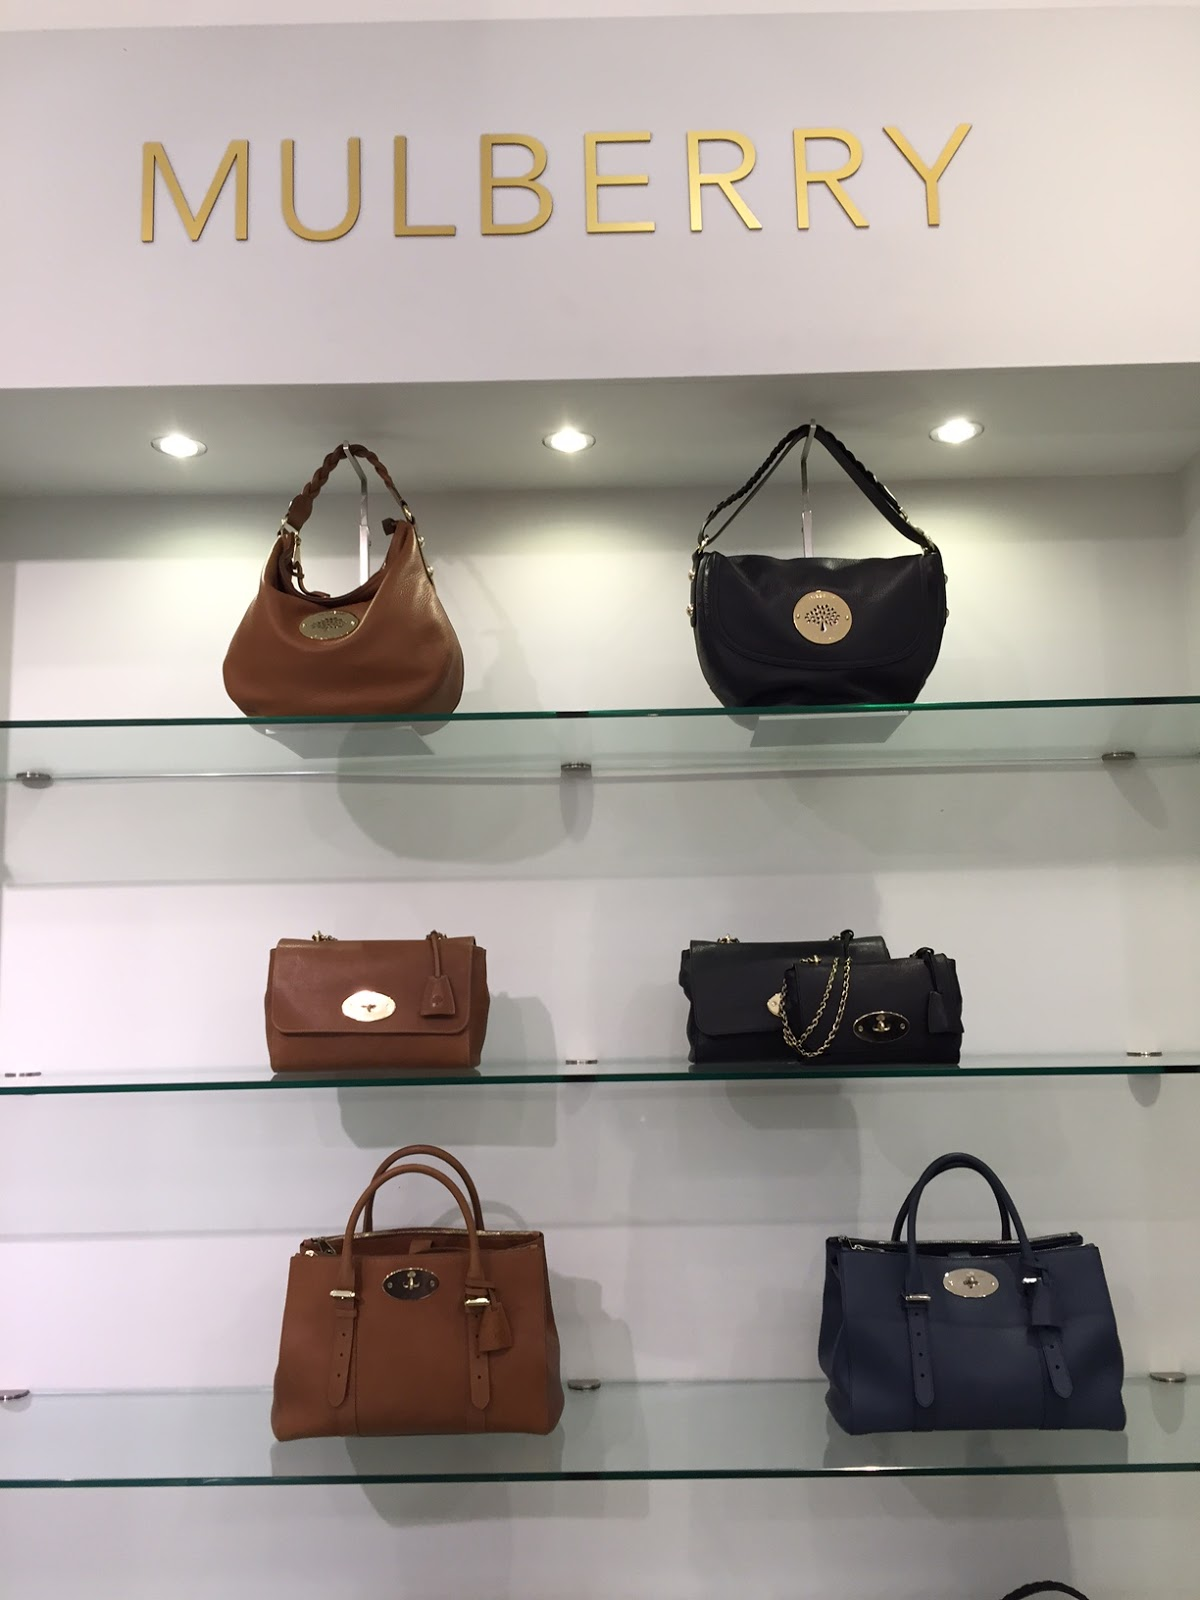 b7004f1cdf5c wish and wear  On Location  Mulberry at Selfridges Visit